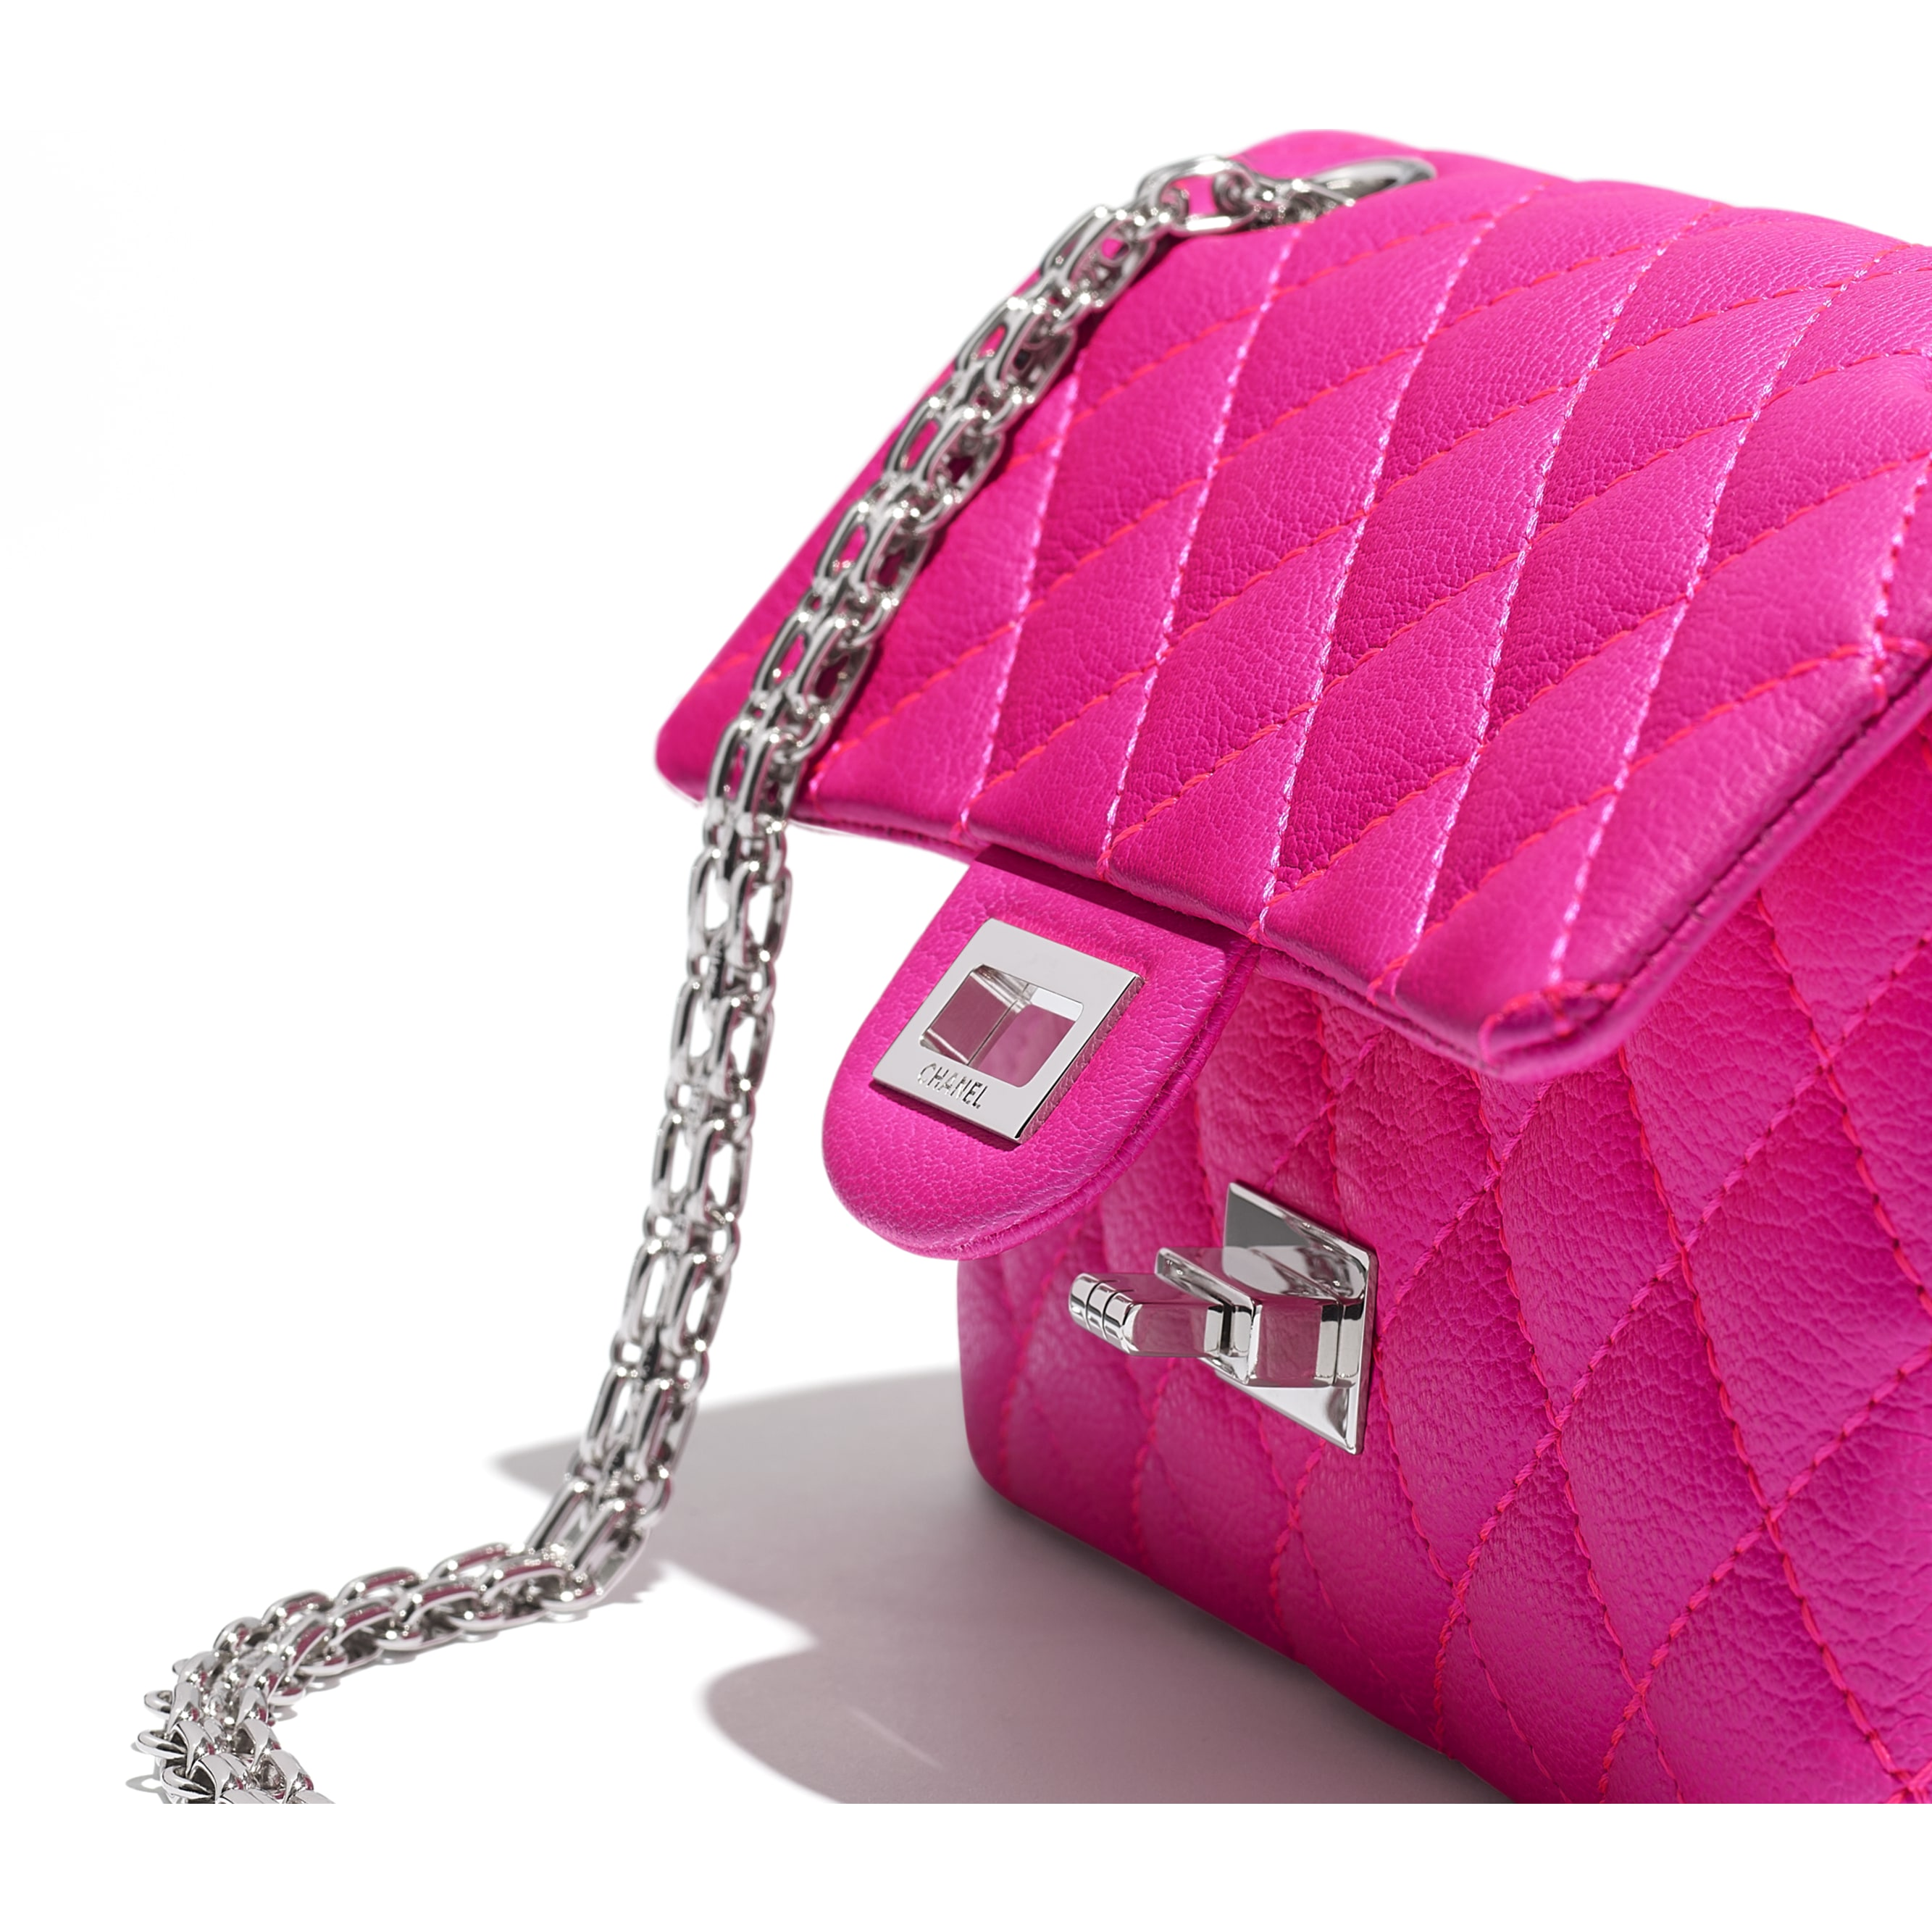 Mini 2.55 Handbag - Pink - Goatskin & Silver-Tone Metal - CHANEL - Extra view - see standard sized version